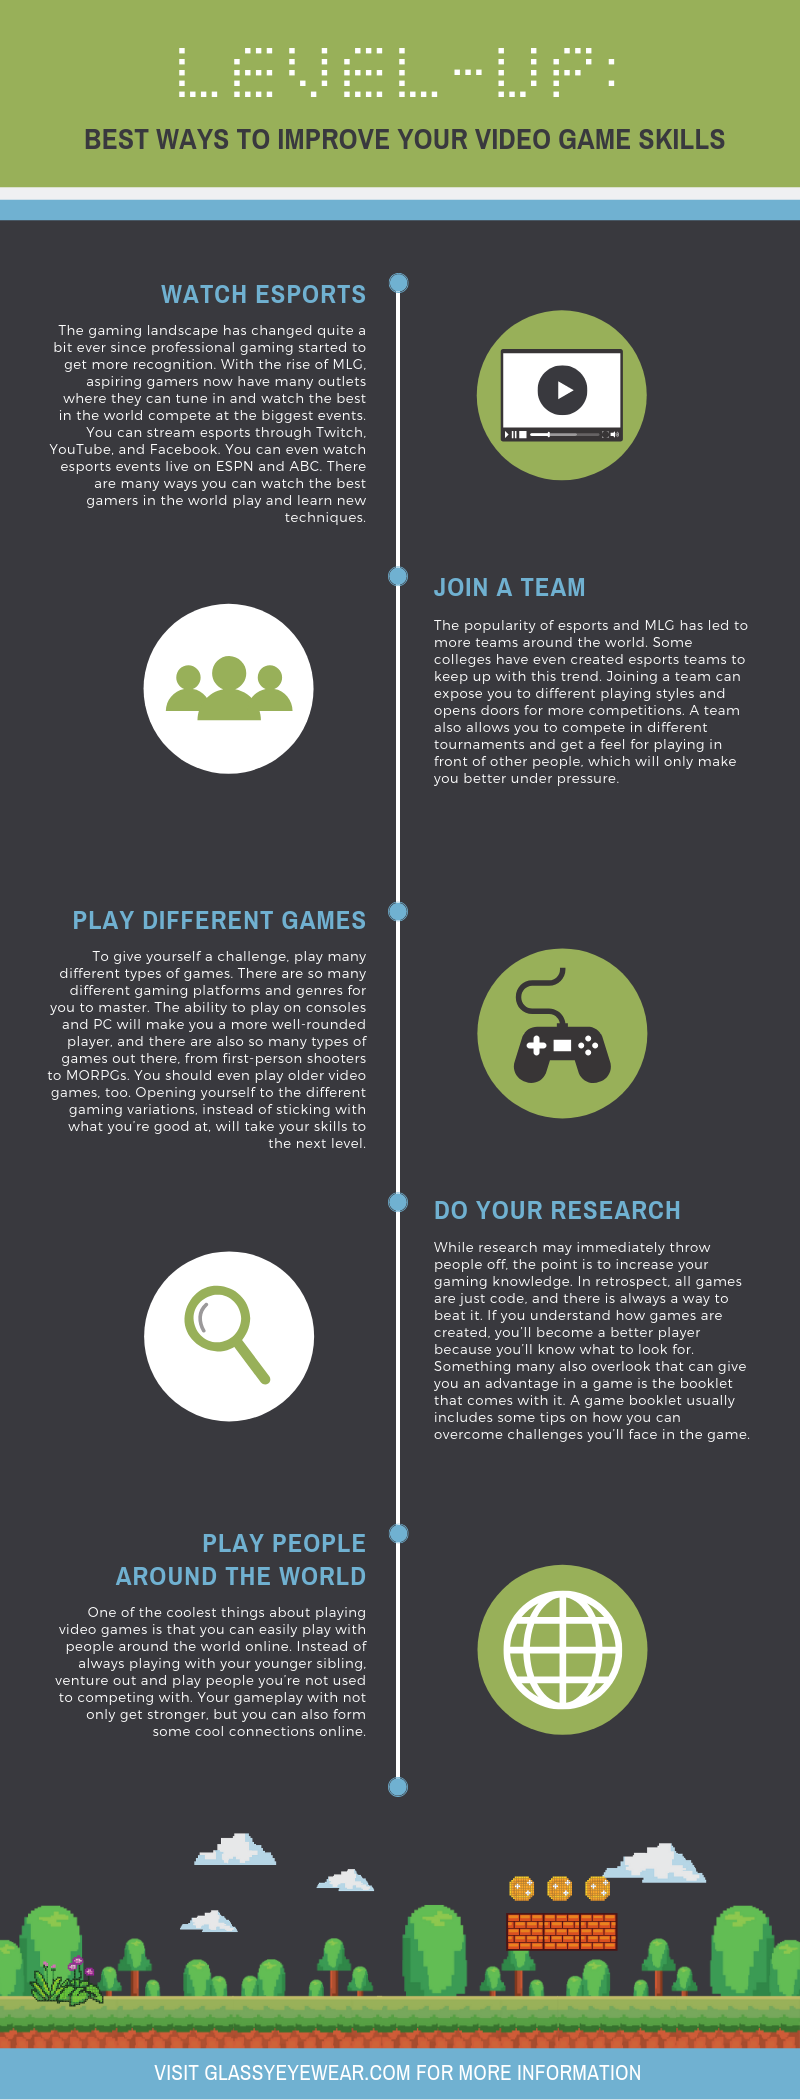 Improve Your Video Game Skills